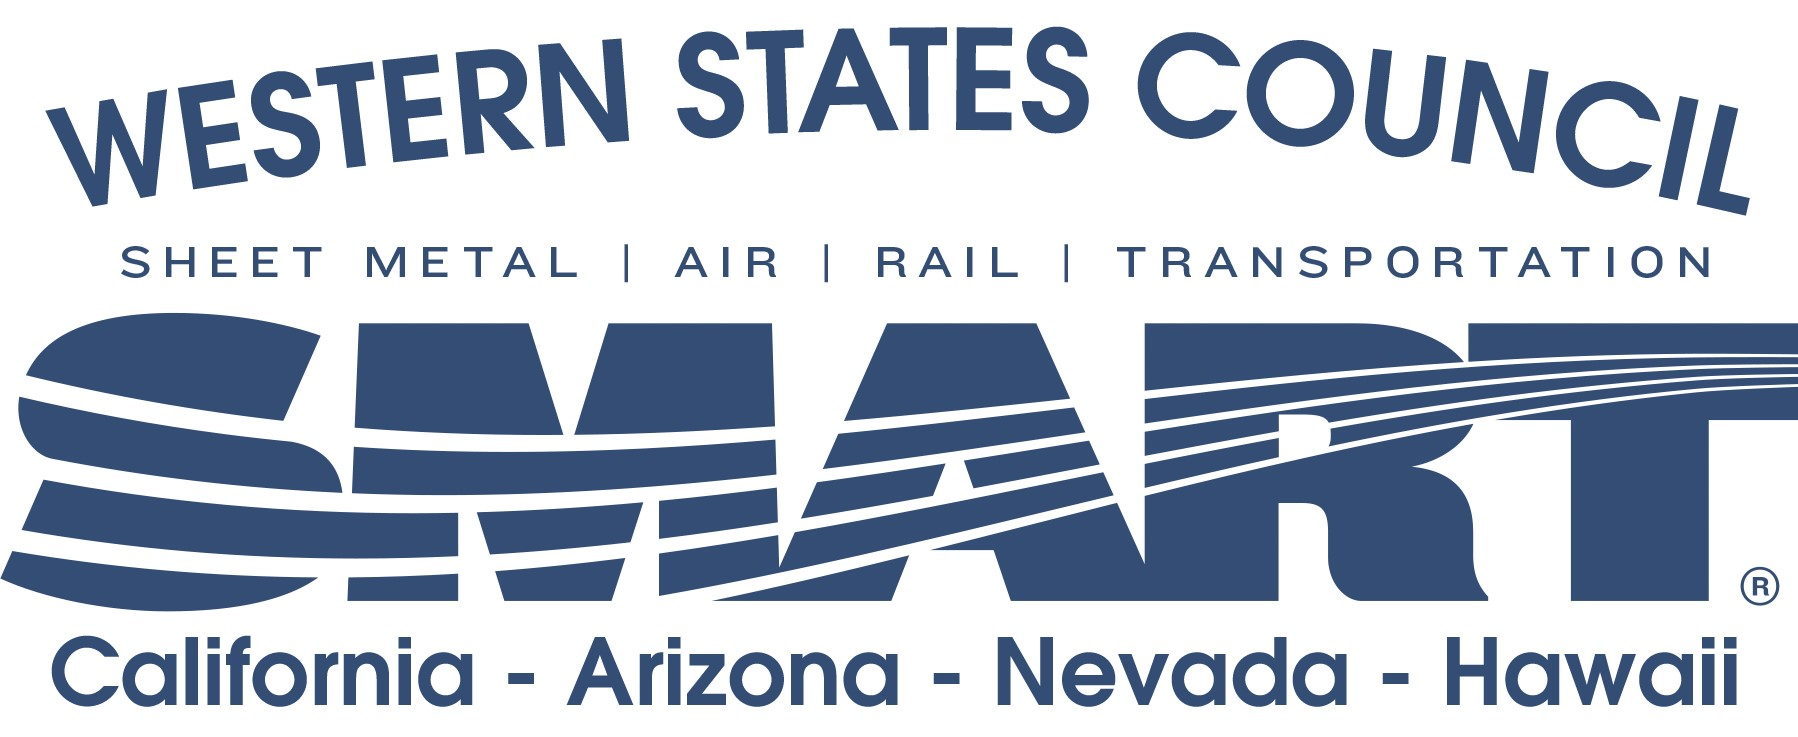 Western States Council Logo - Sheet Metal, Air, Rail and Transportation